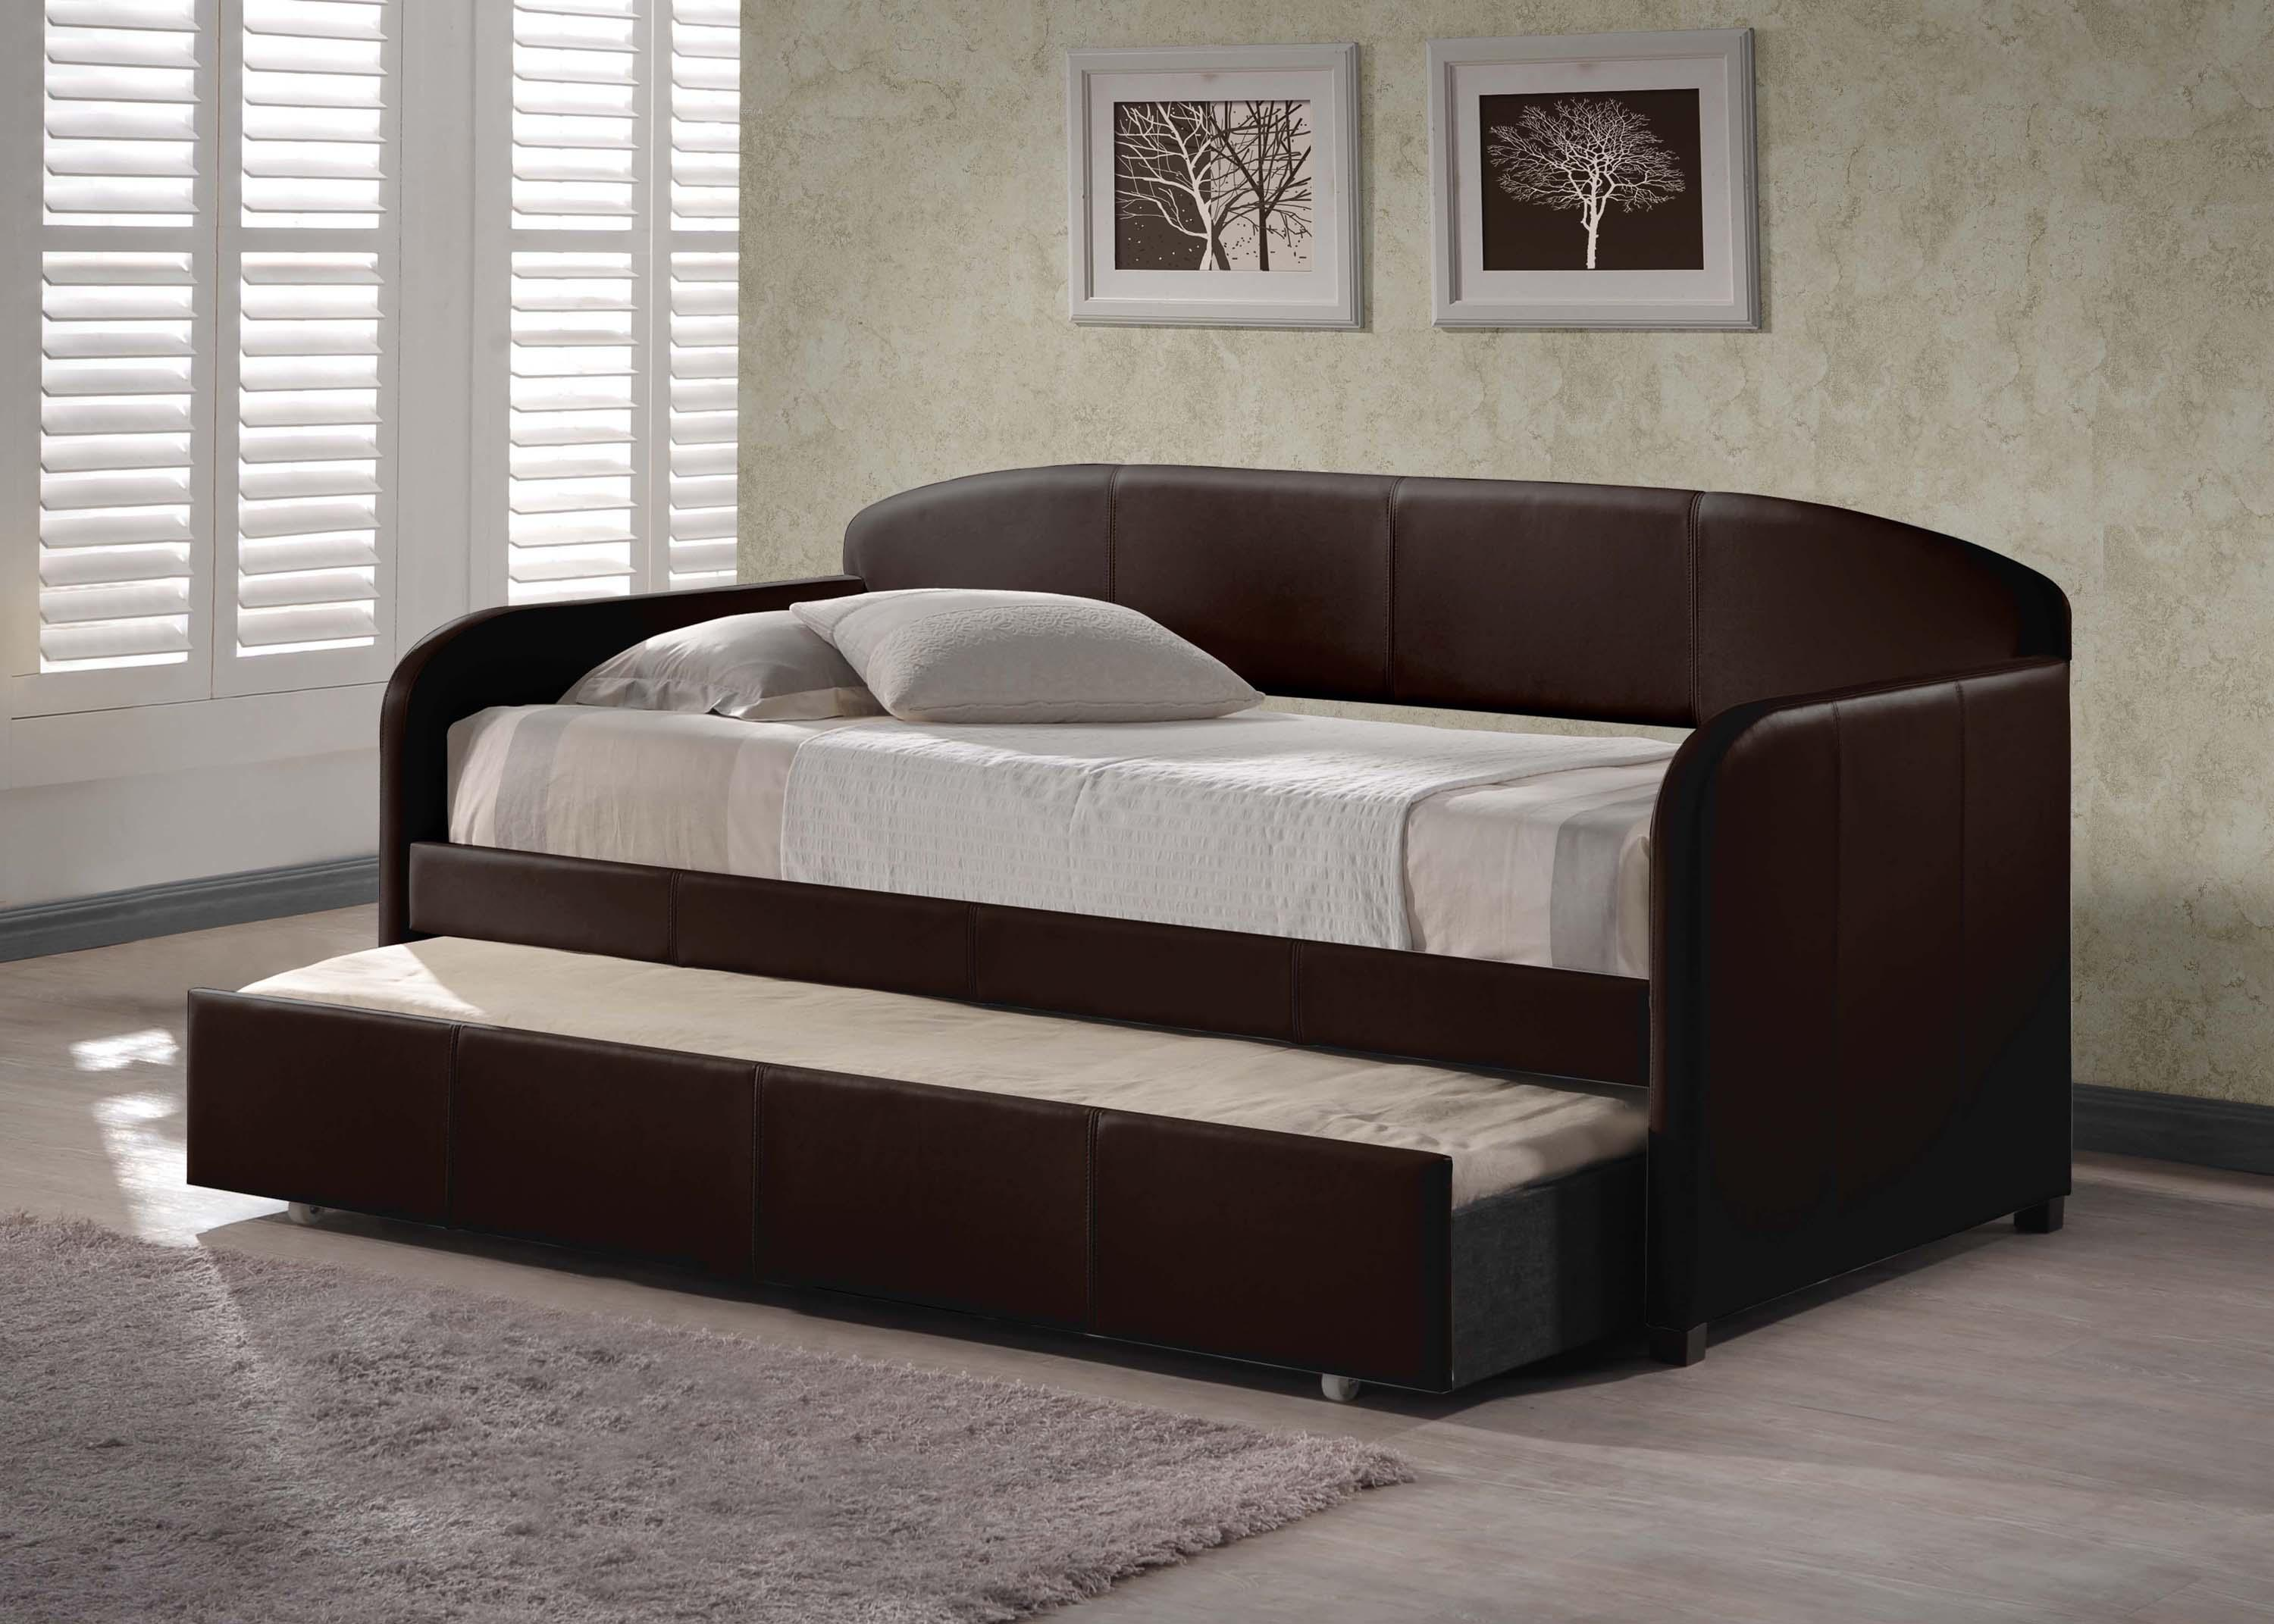 Modern Trundle Day Beds Pictures 11